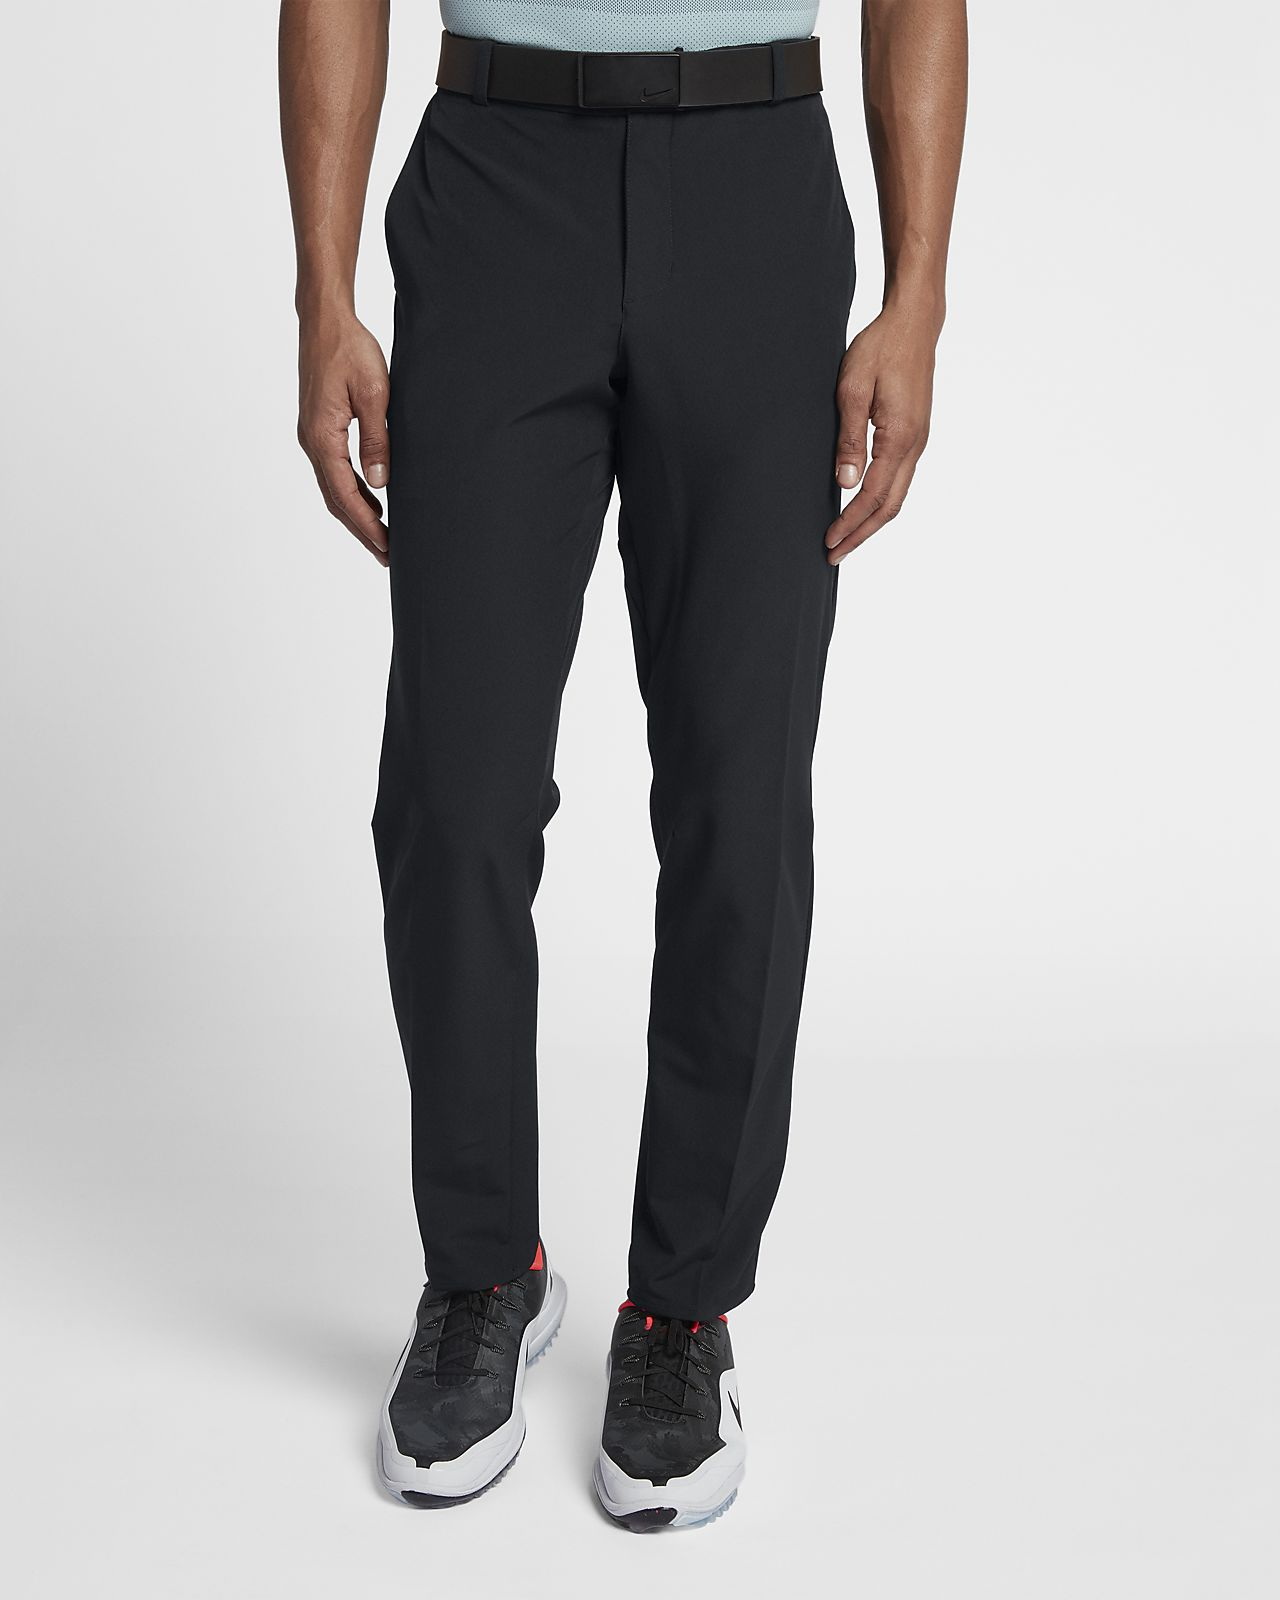 Pantaloni da golf Slim Fit Nike Flex - Uomo